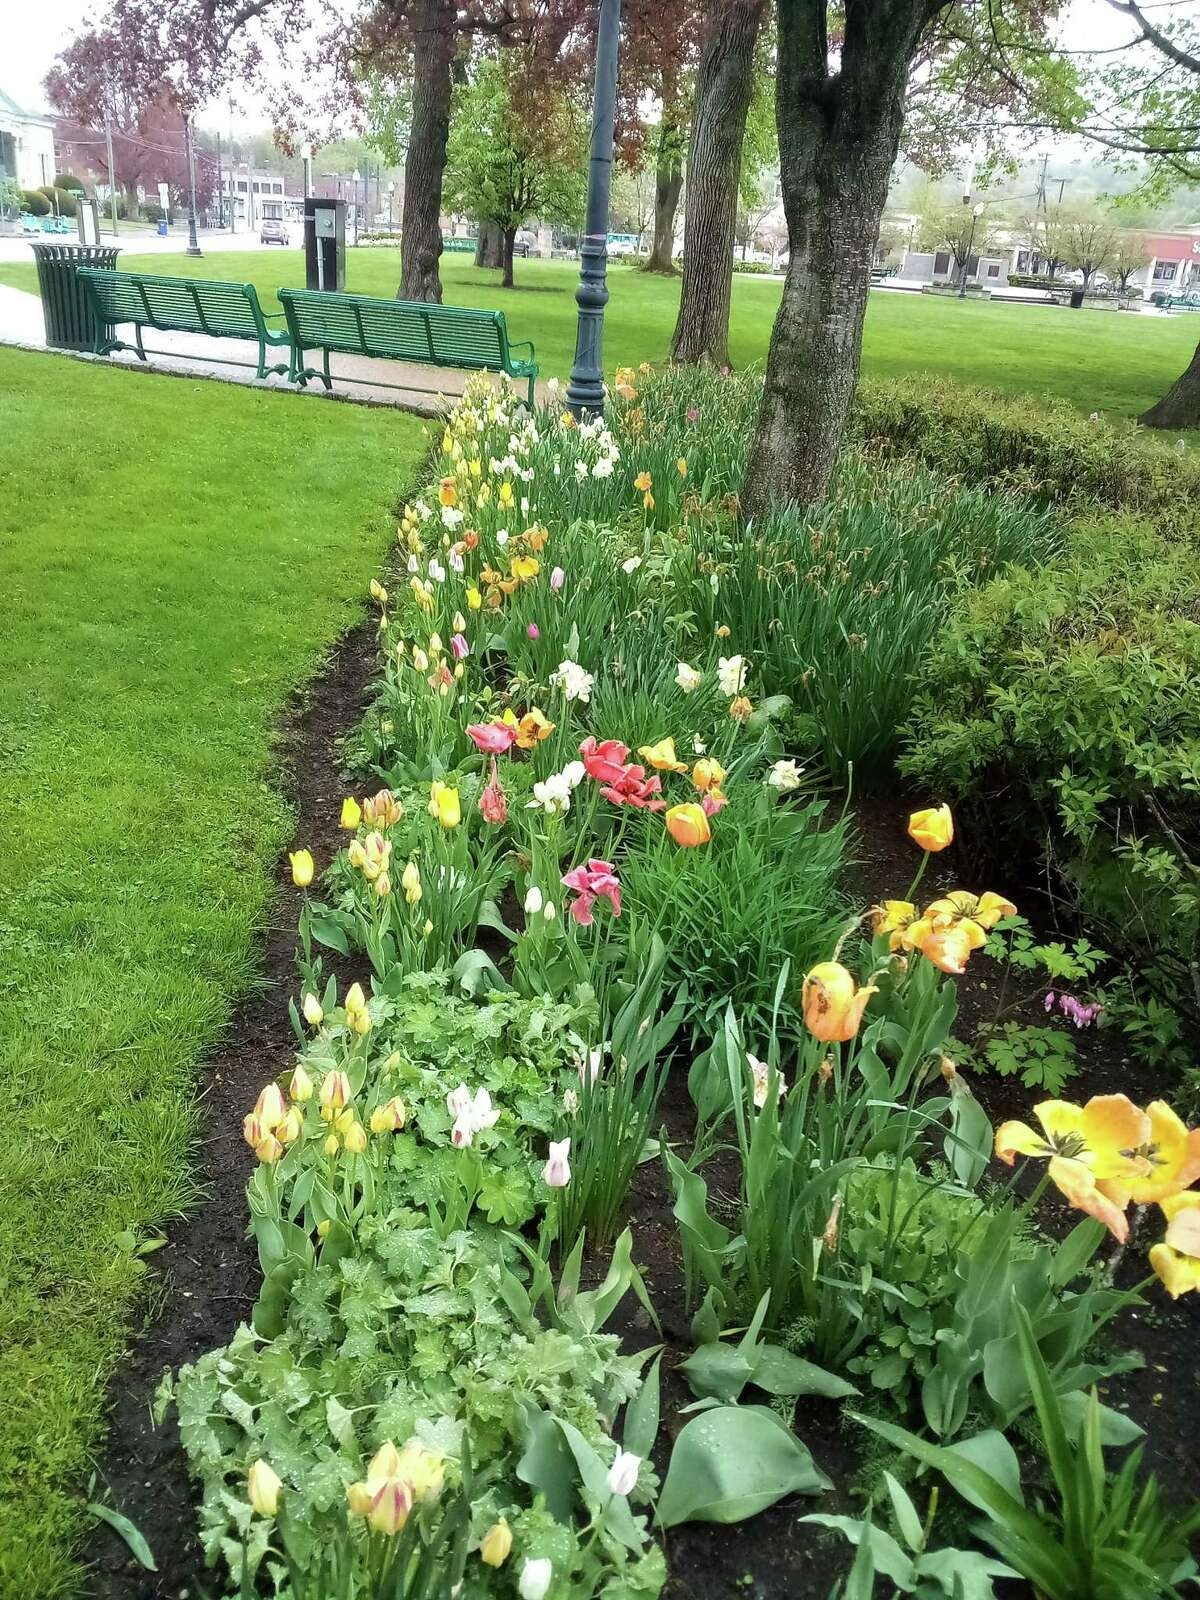 Torrington's Coe Memorial Park on the corner of South Main Street and Litchfield Street is in full bloom this week, with a variety of tulips and flowering trees and shrubs.